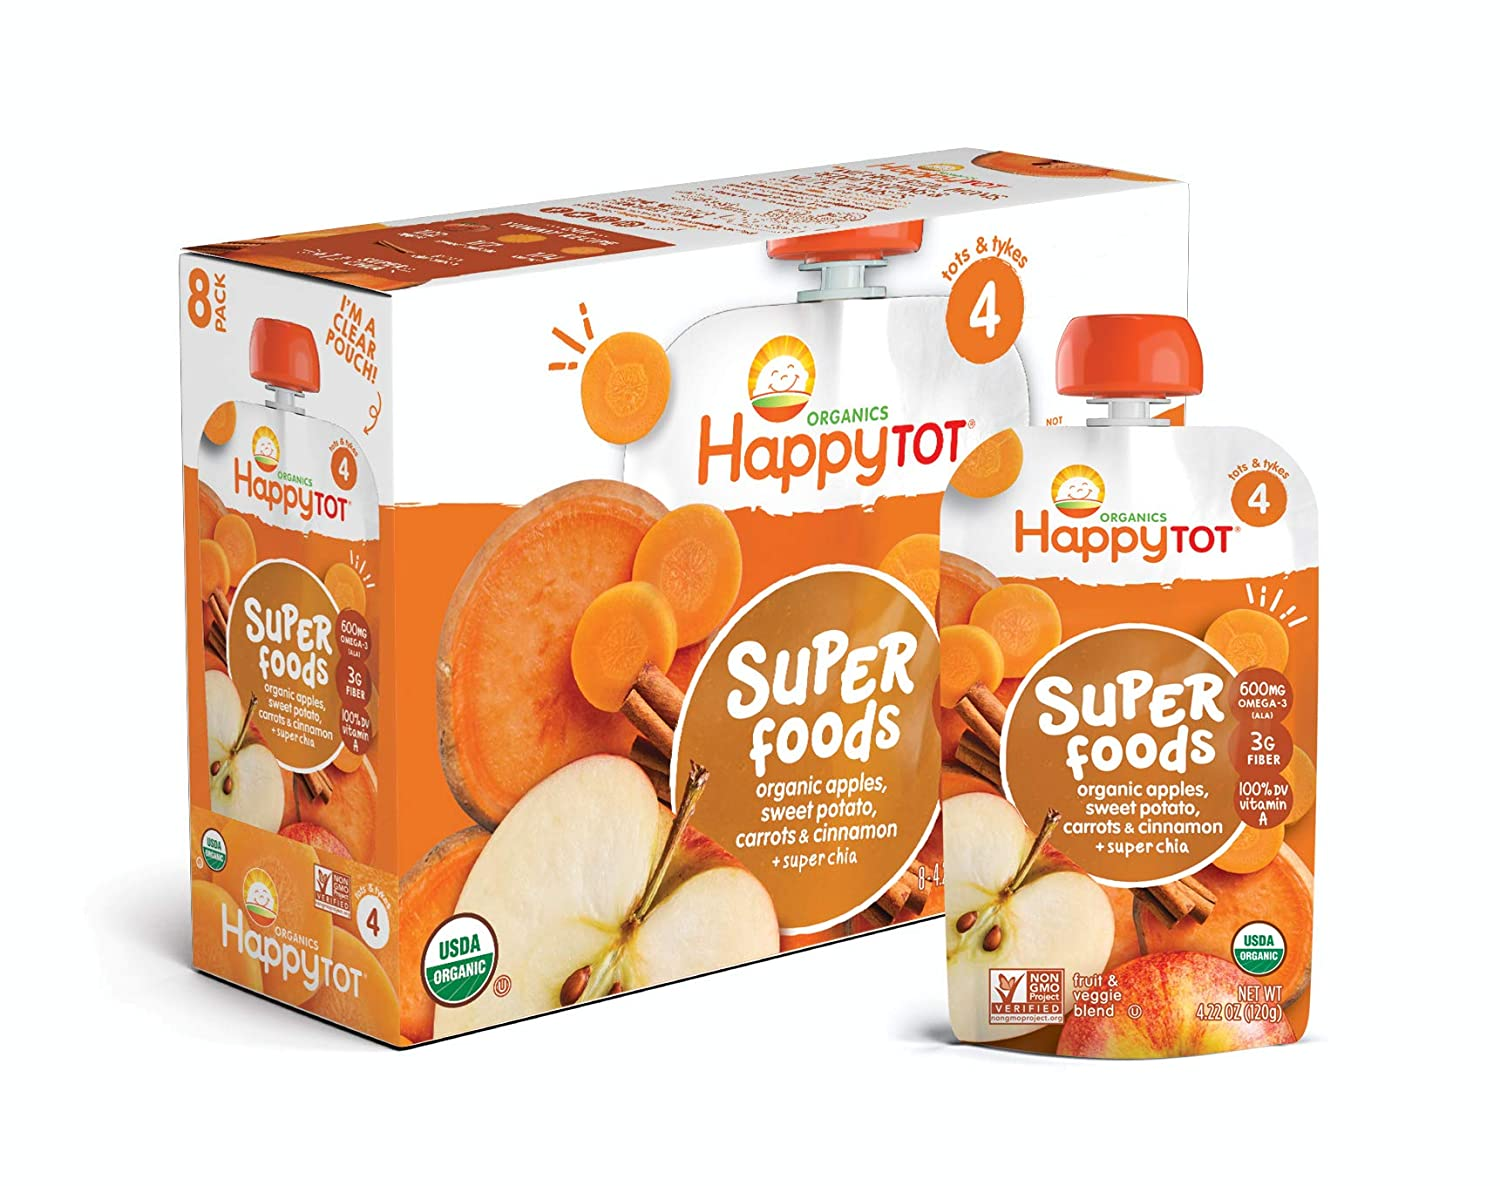 Happy Tot Organic Stage 4 Super Foods Pears Bananas Sweet Potatoes & Pumpkin + Super Chia, 4.22 Ounce Pouch (Pack of 16) (Packaging May Vary) 01029